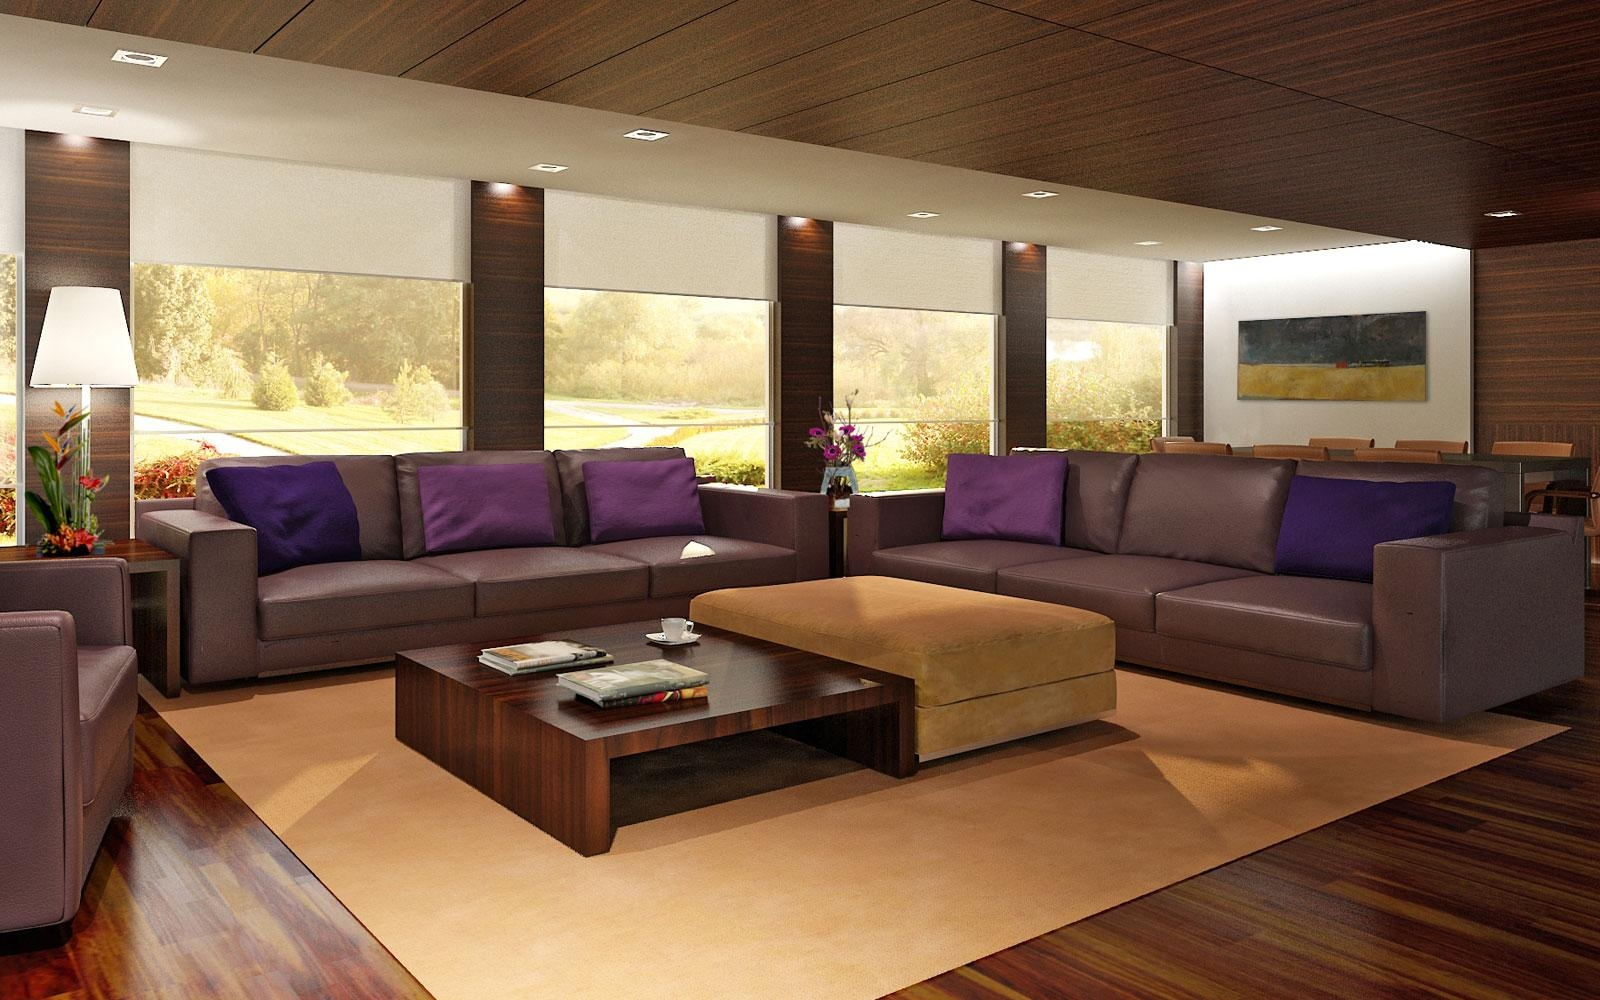 Big Living Room Wuth Large Sectional Sofa And Coffee Table And Within Big Sofa Chairs (View 11 of 20)